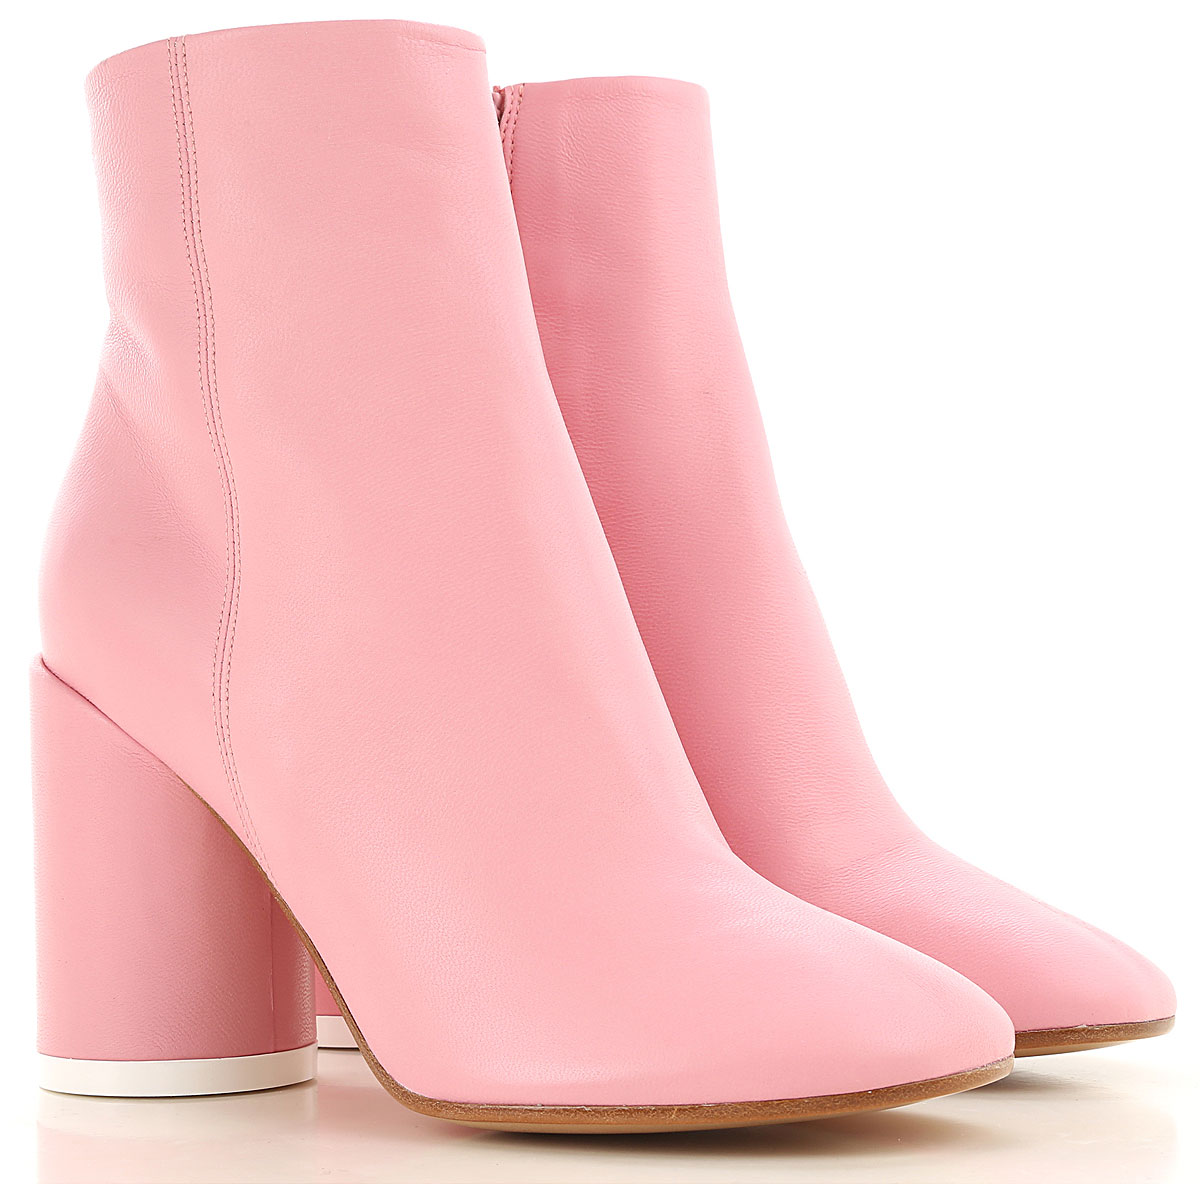 Maison Martin Margiela Boots for Women, Booties On Sale, Baby Rose, Leather, 2019, 10 11 6 6.5 7 8 8.5 9